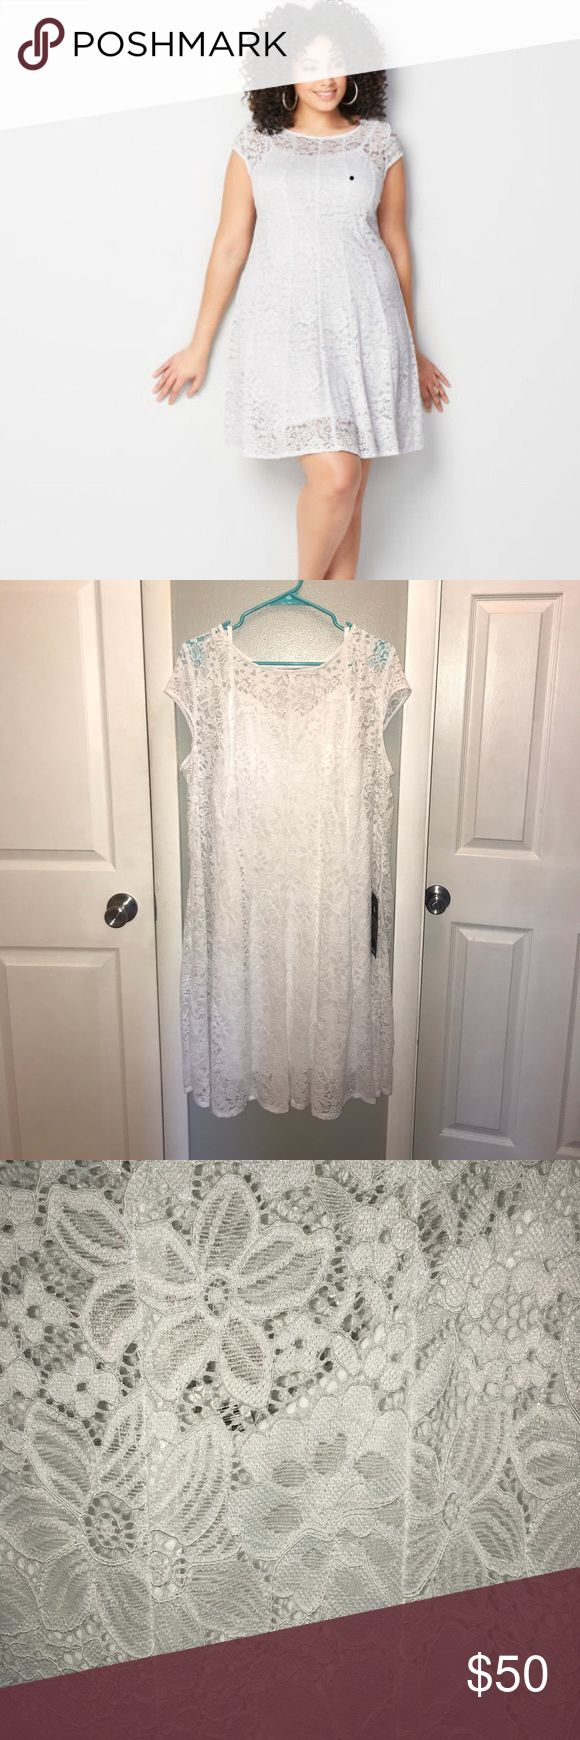 74358fa2b6 White Lace Fit   Flare Dress - Size 18 20 Lace dress with cap sleeves with  a fit and flare finish. • Plus size dress. • Scoop neckline. • Short cap  sleeves.